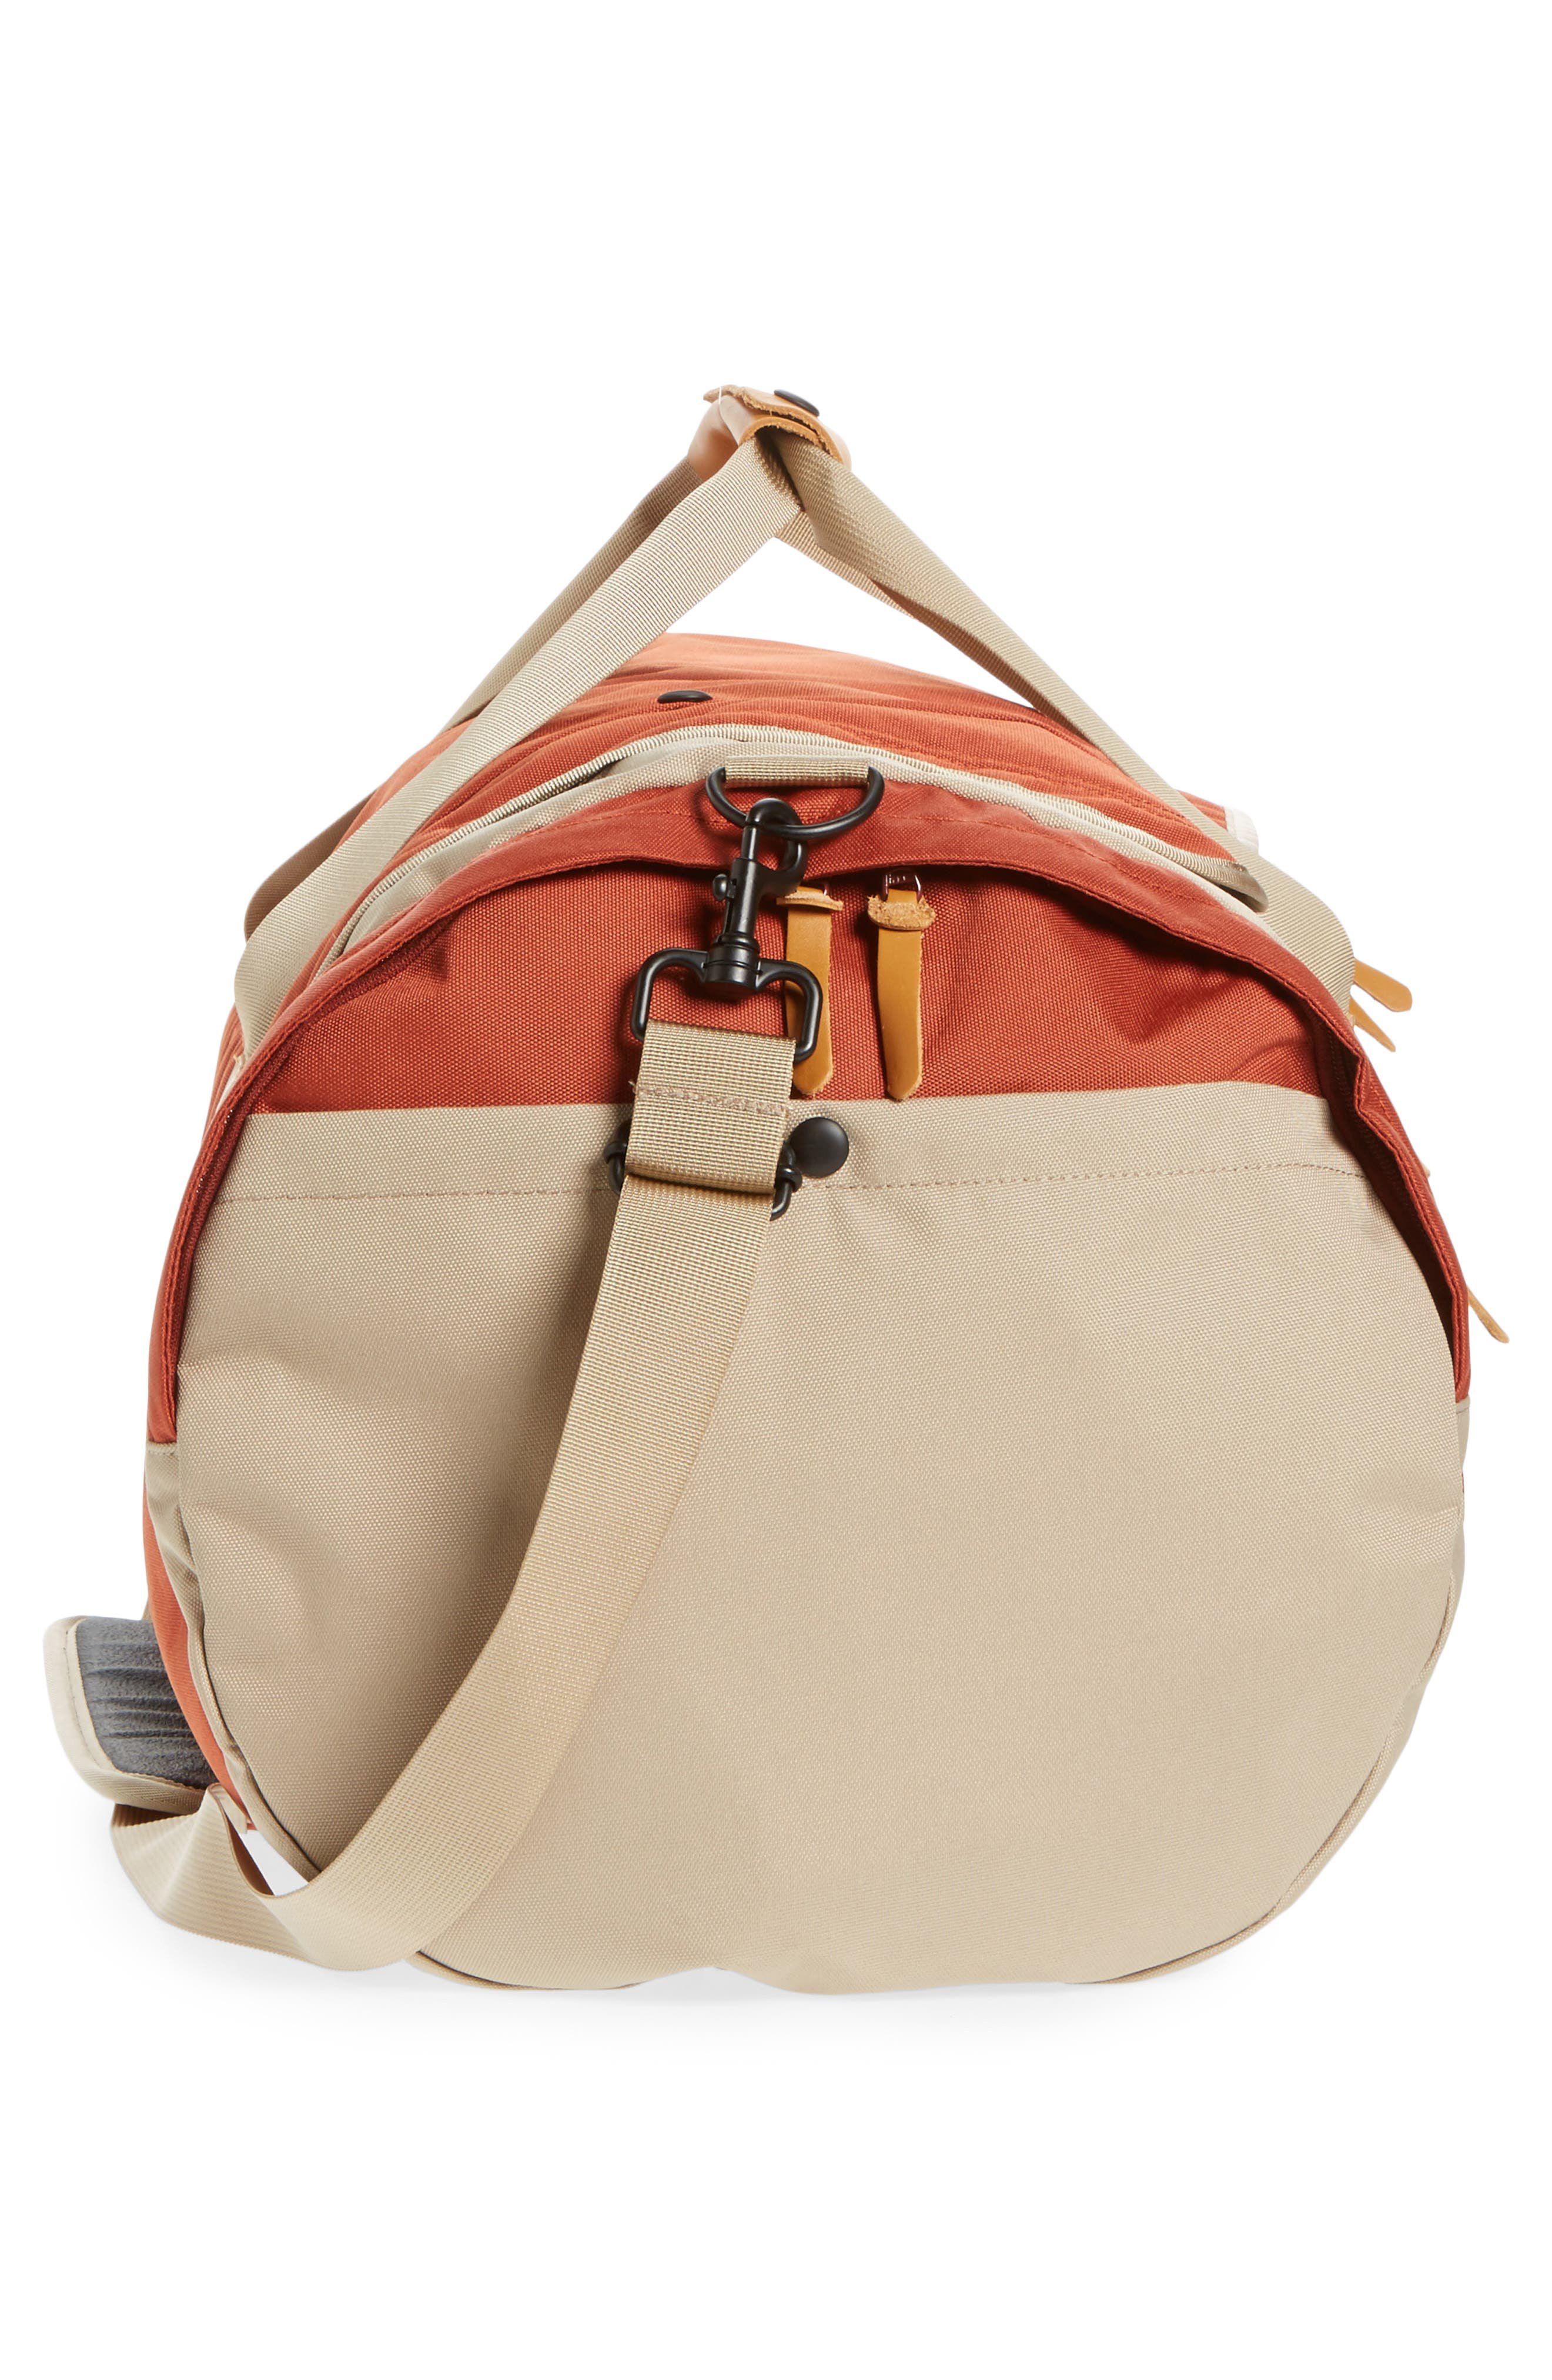 Arc Duffel Bag,                             Alternate thumbnail 5, color,                             Rust/ Tan